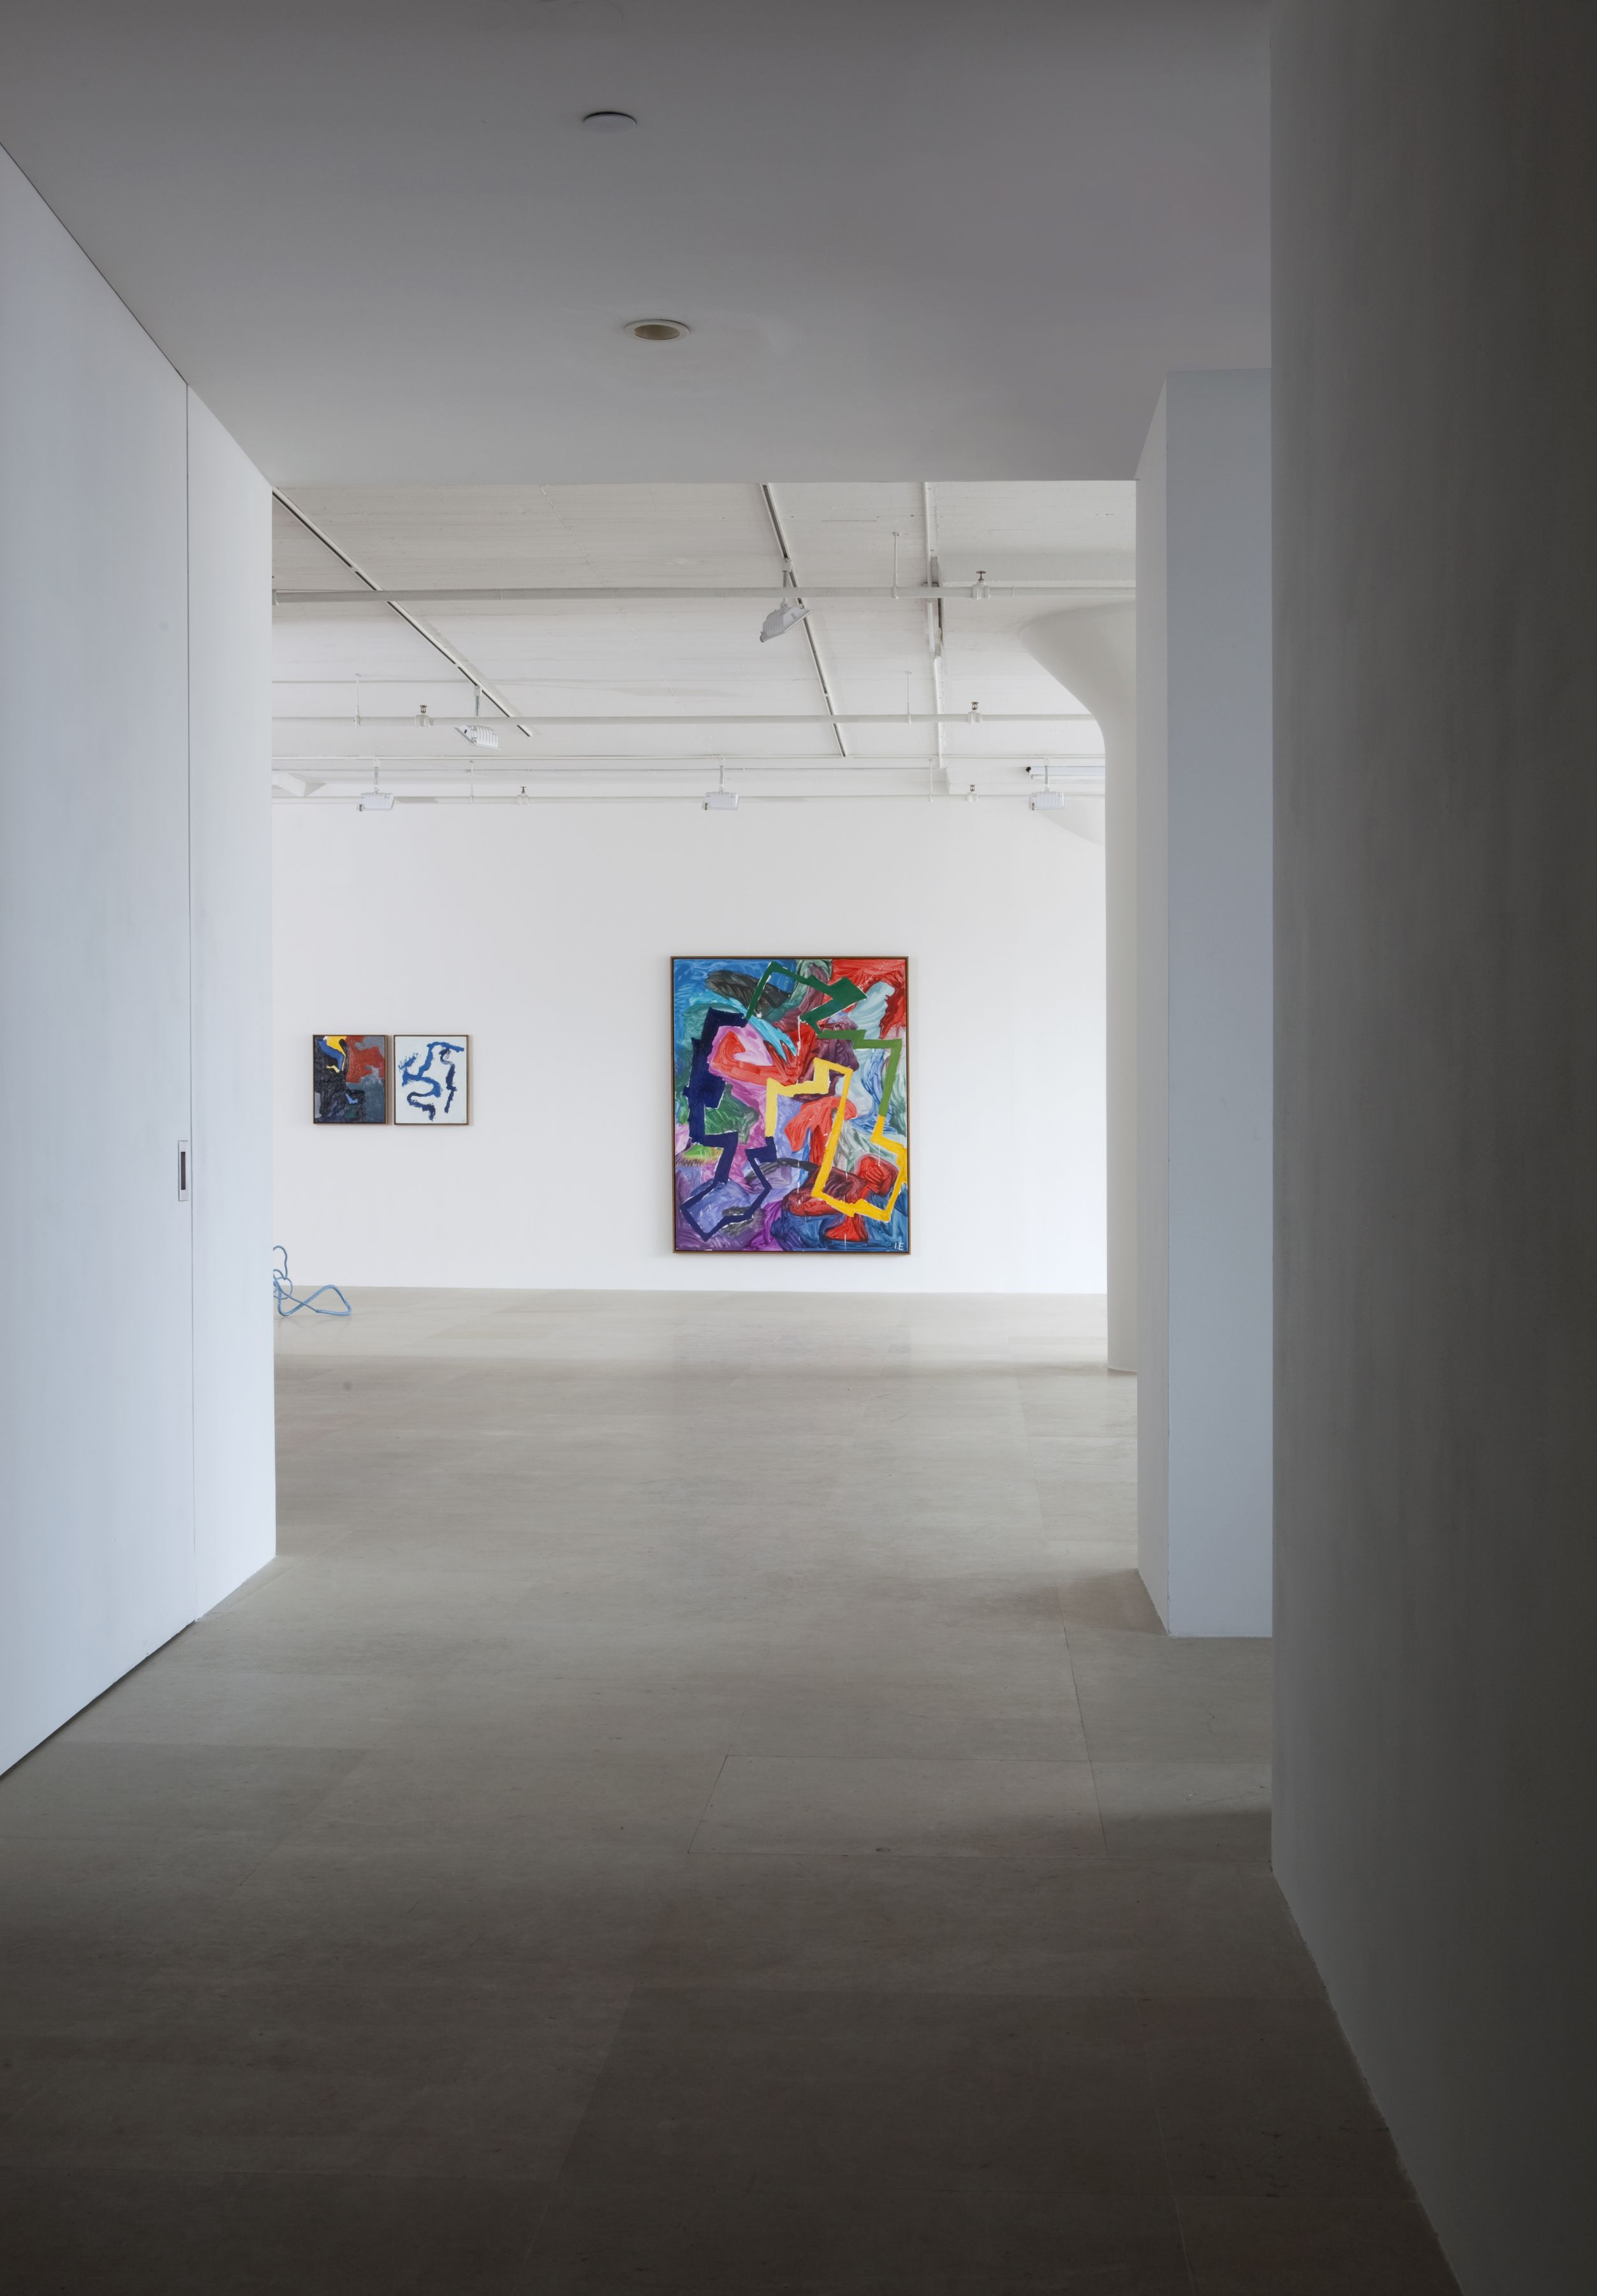 Ida Ekblad, Installation view, Greene Naftali, New York, 2011